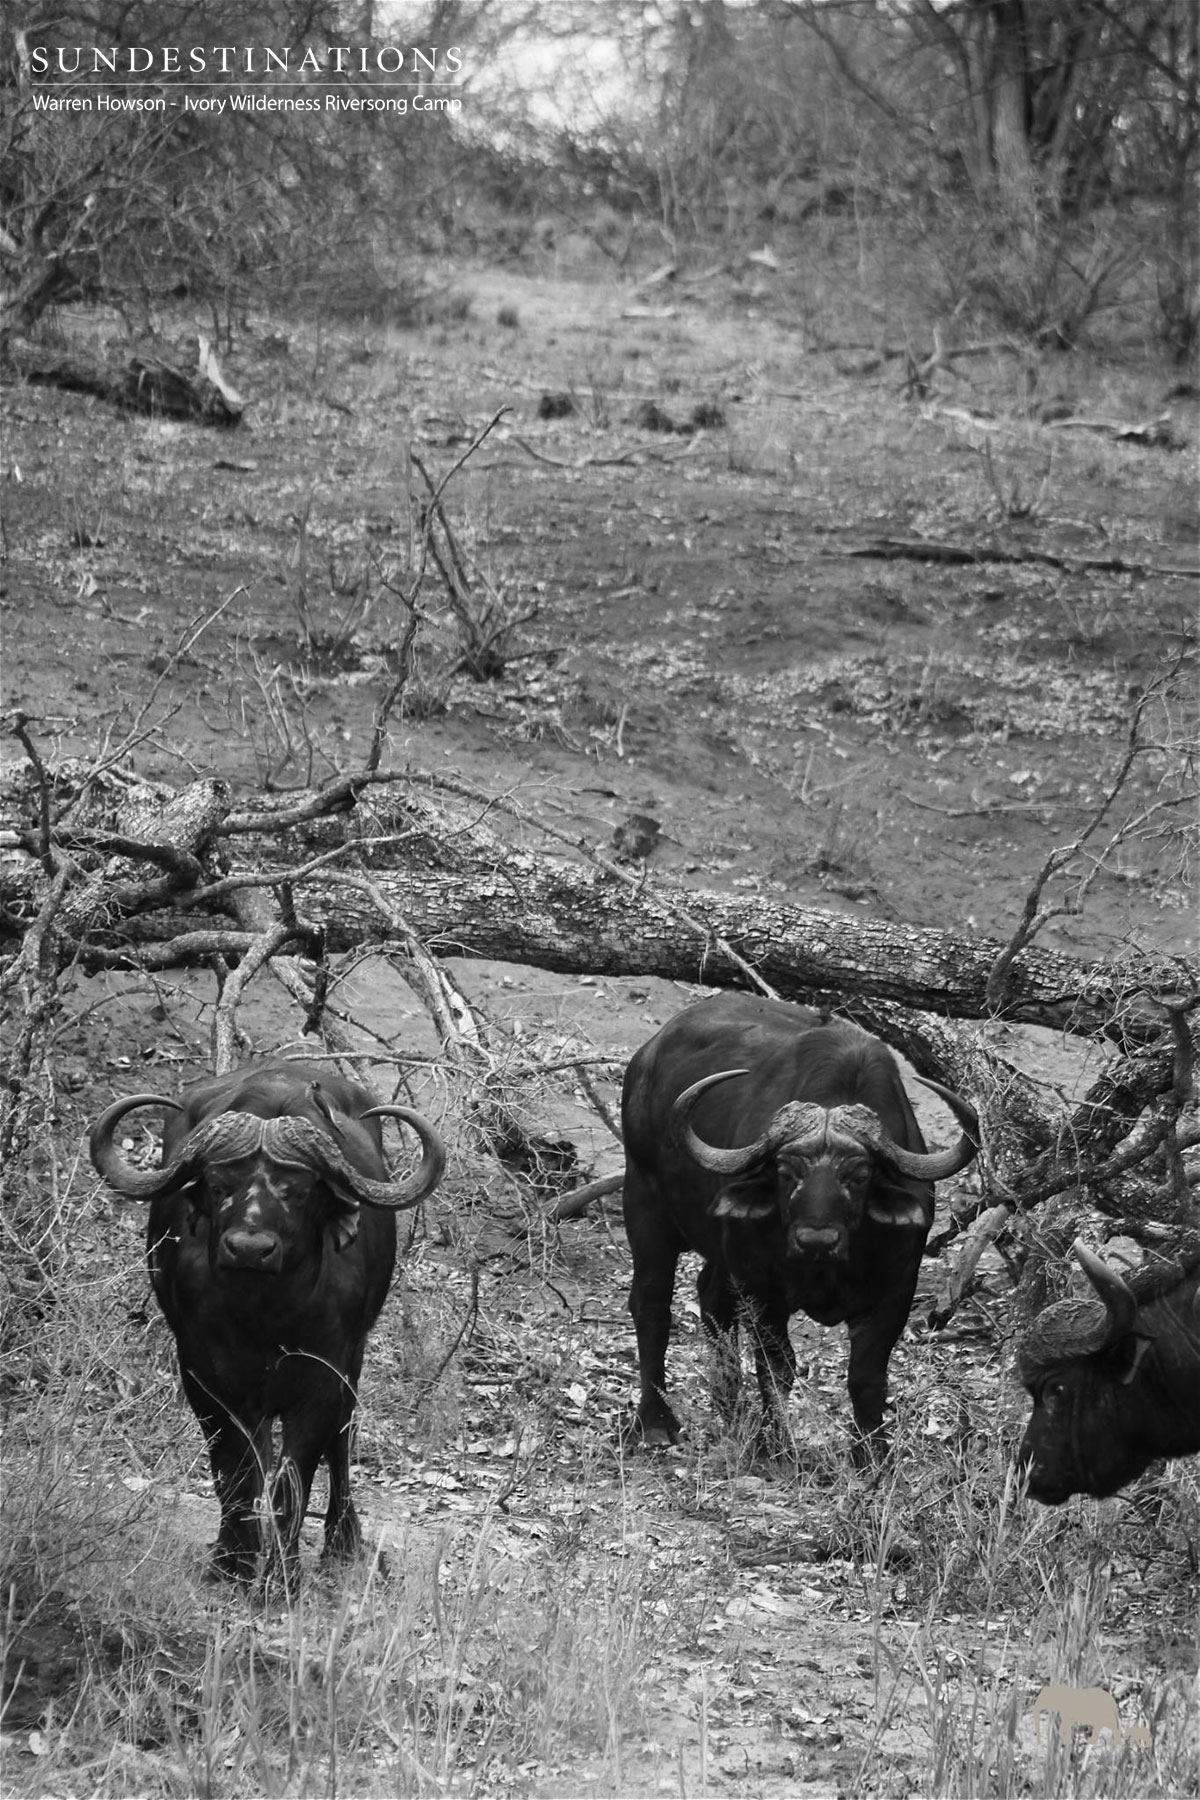 Buffalo at Ivory Wilderness Riversong Camp